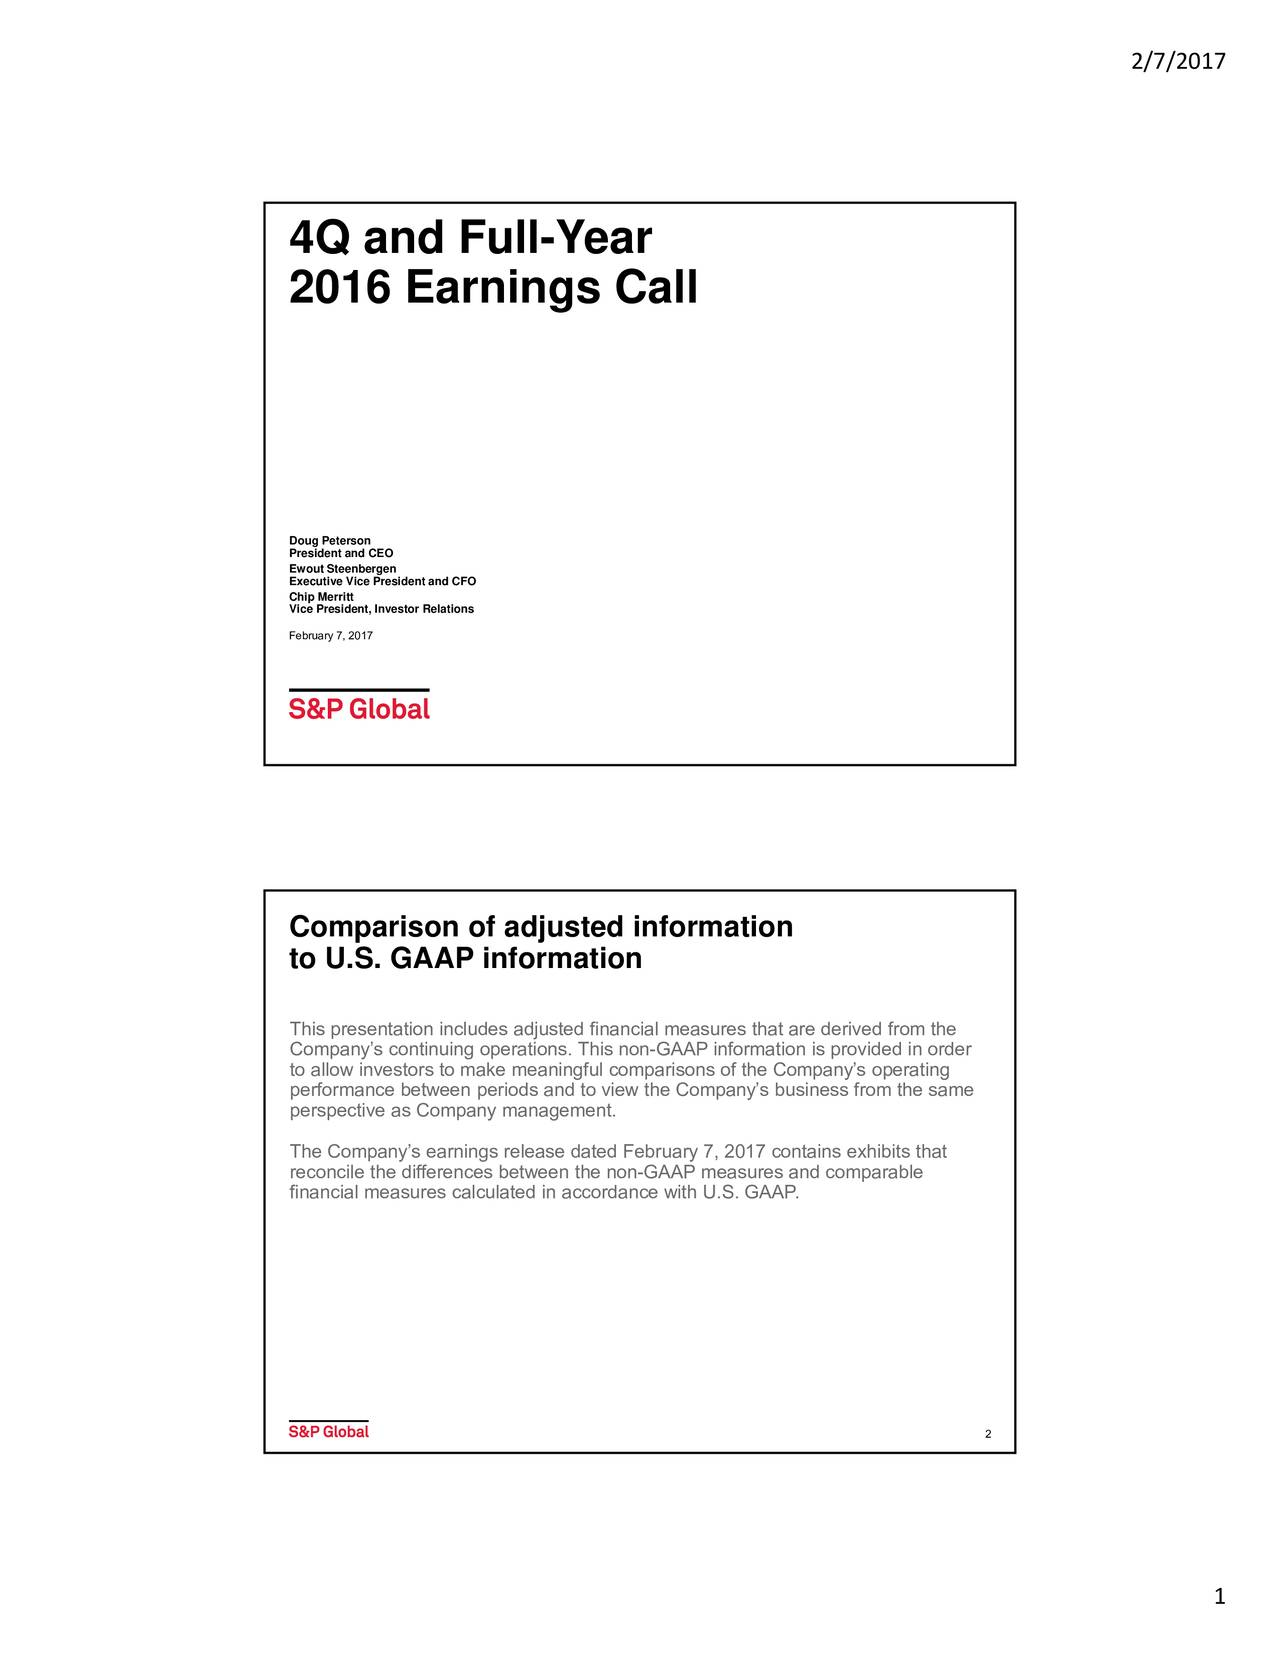 4Q and Full-Year 2016 Earnings Call President and CEO Ewout Steenbergen Chip Merrittce President and CFO Vice President, Investor Relations February 7, 2017 Comparison of adjusted information to U.S. GAAP information This presentation includes adjusted financial measures that are derived from the Companys continuing operations. This non-GAAP information is provided in order to allow investors to make meaningful comparisons of the Companys operating performance between periods and to view the Companys business from the same perspective as Company management. The Companys earnings release dated February 7, 2017 contains exhibits that reconcile the differences between the non-GAAP measures and comparable financial measures calculated in accordance with U.S. GAAP. 2 1